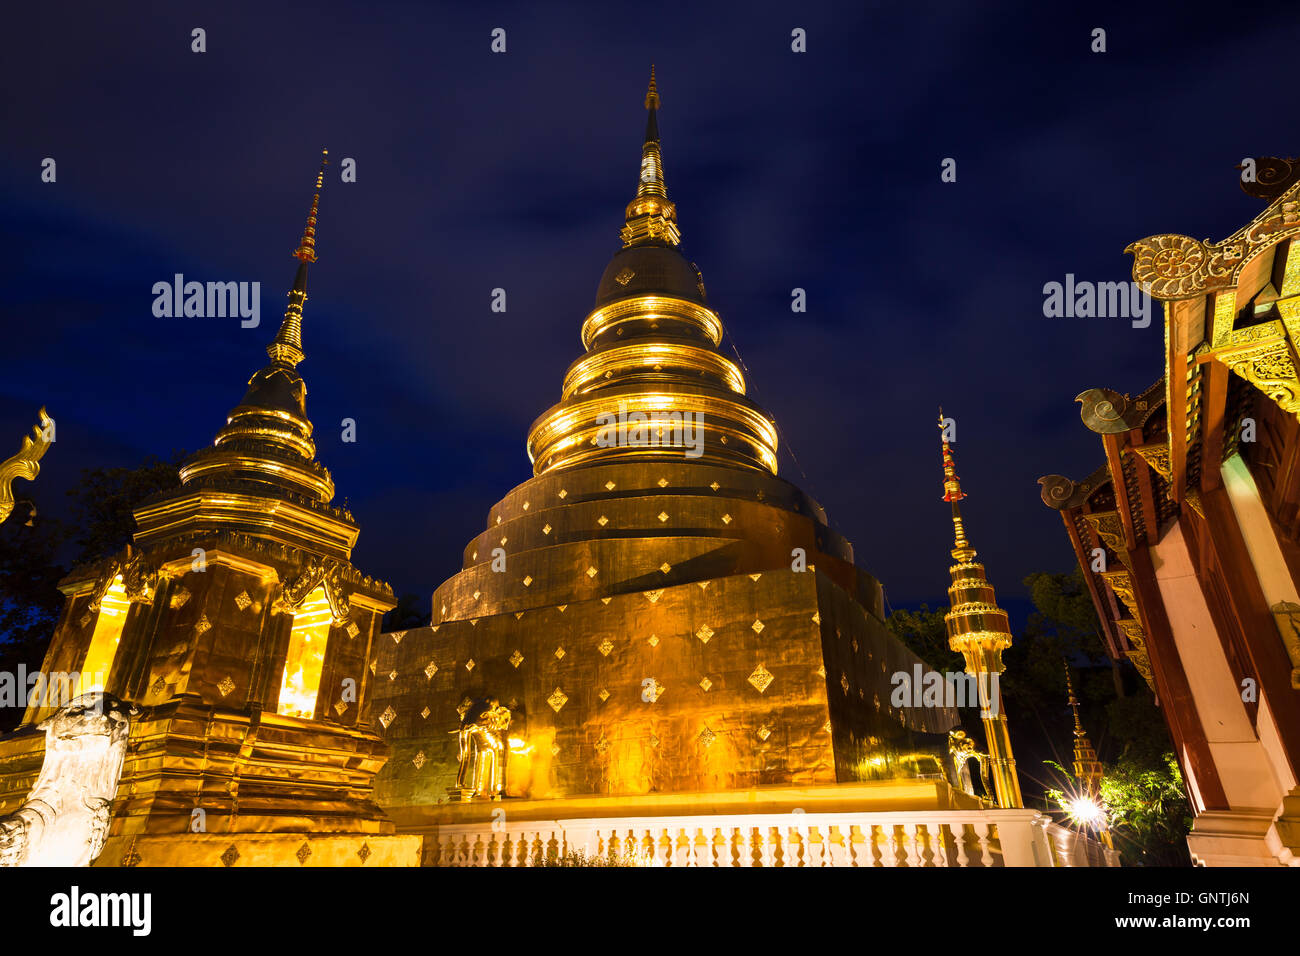 Golden stupa of Wat Phra Singh at dusk, Chiang Mai, Thailand - Stock Image